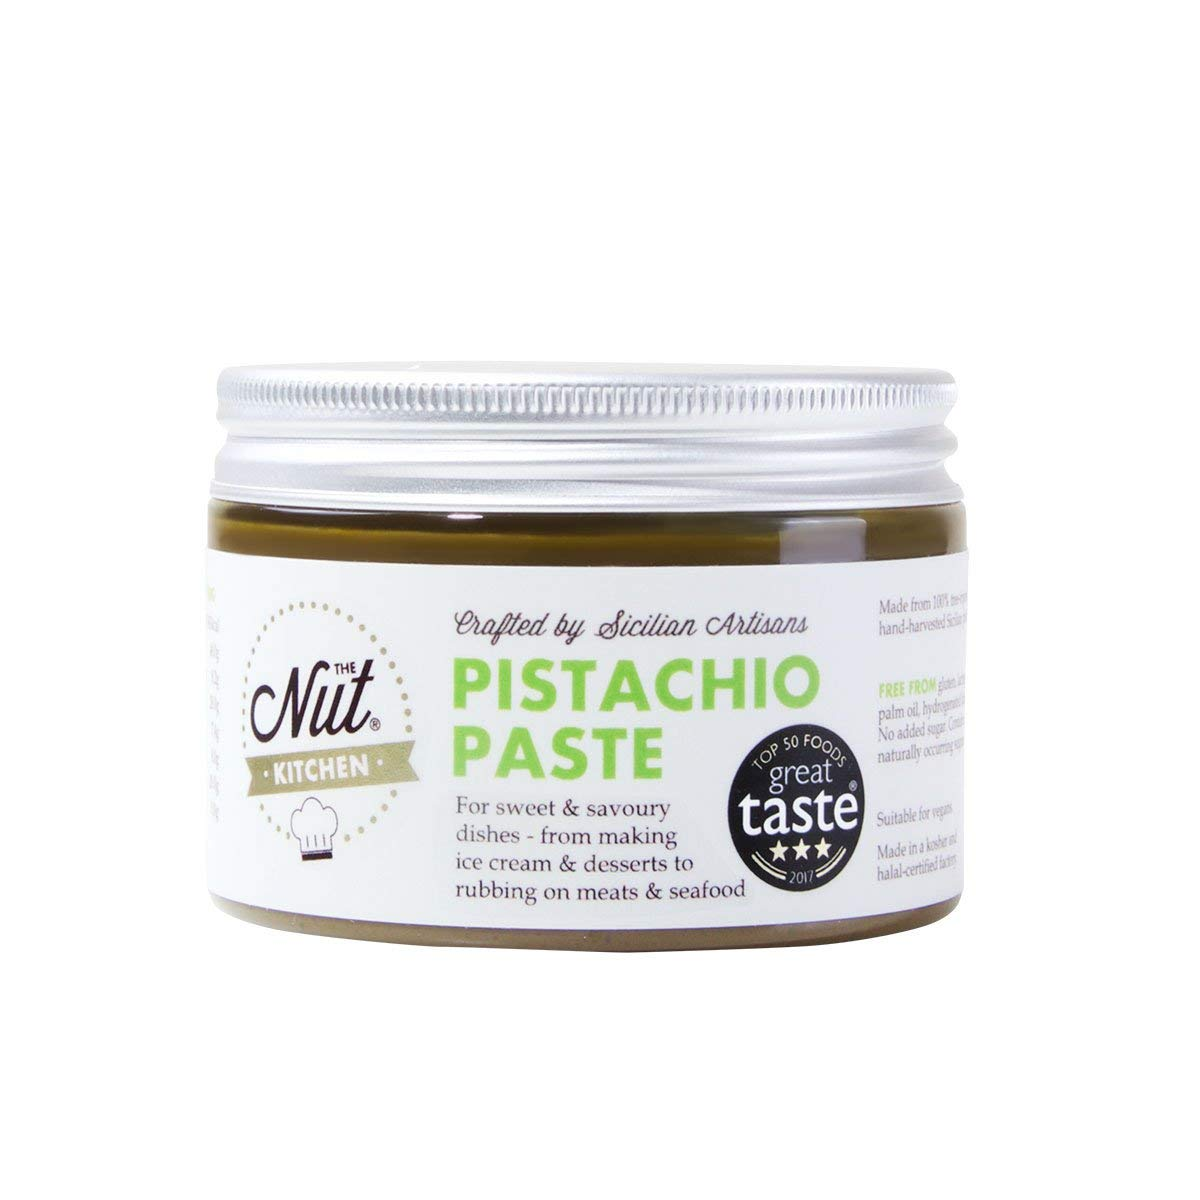 The Nut Kitchen - Smooth Pistachio Paste (Pistachio Butter) - Made from 100% Sicilian Pistachios - for Baking, Cooking and ice Cream Making - Great Taste Winner